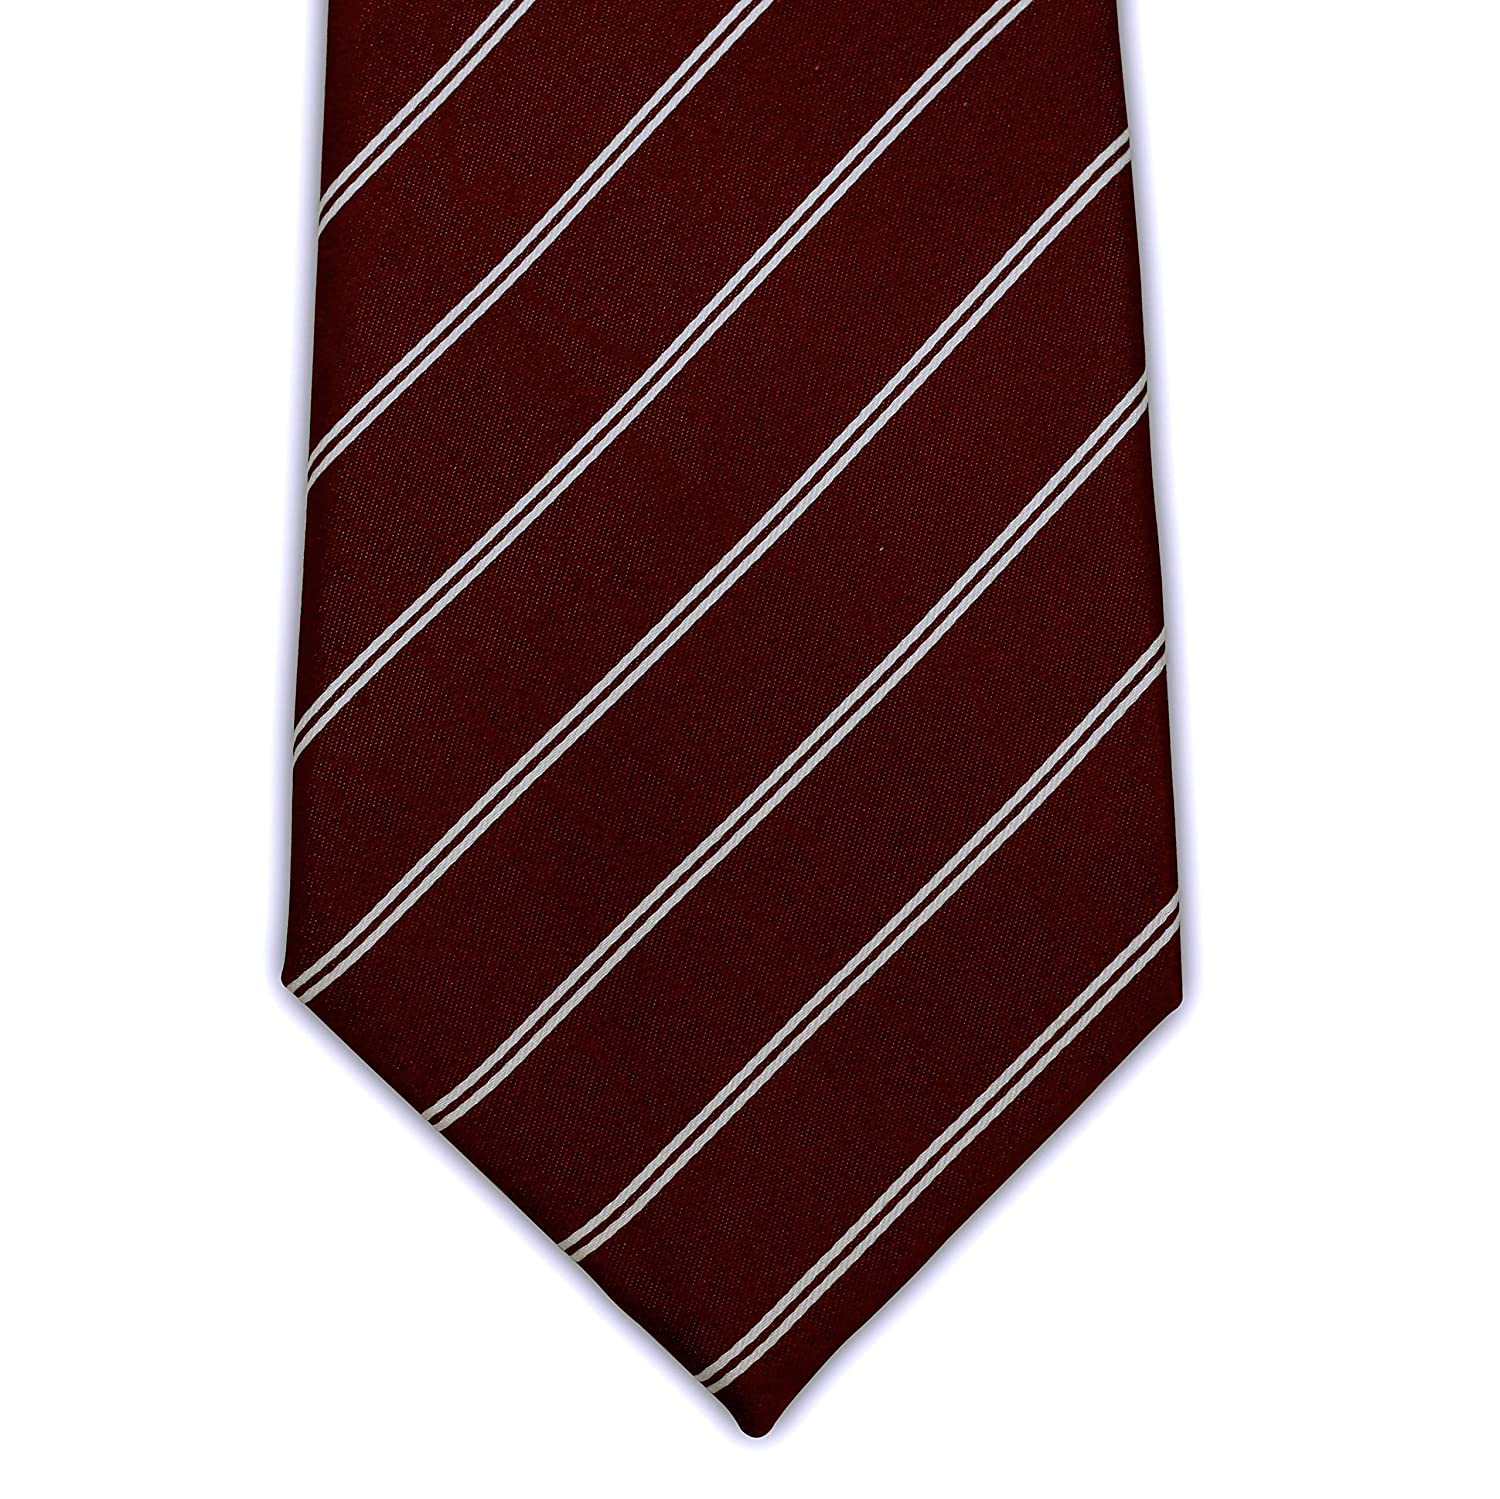 63 XL and 70 XXL Dual Pinstripe 100/% Silk Extra Long Necktie for Big and Tall Men